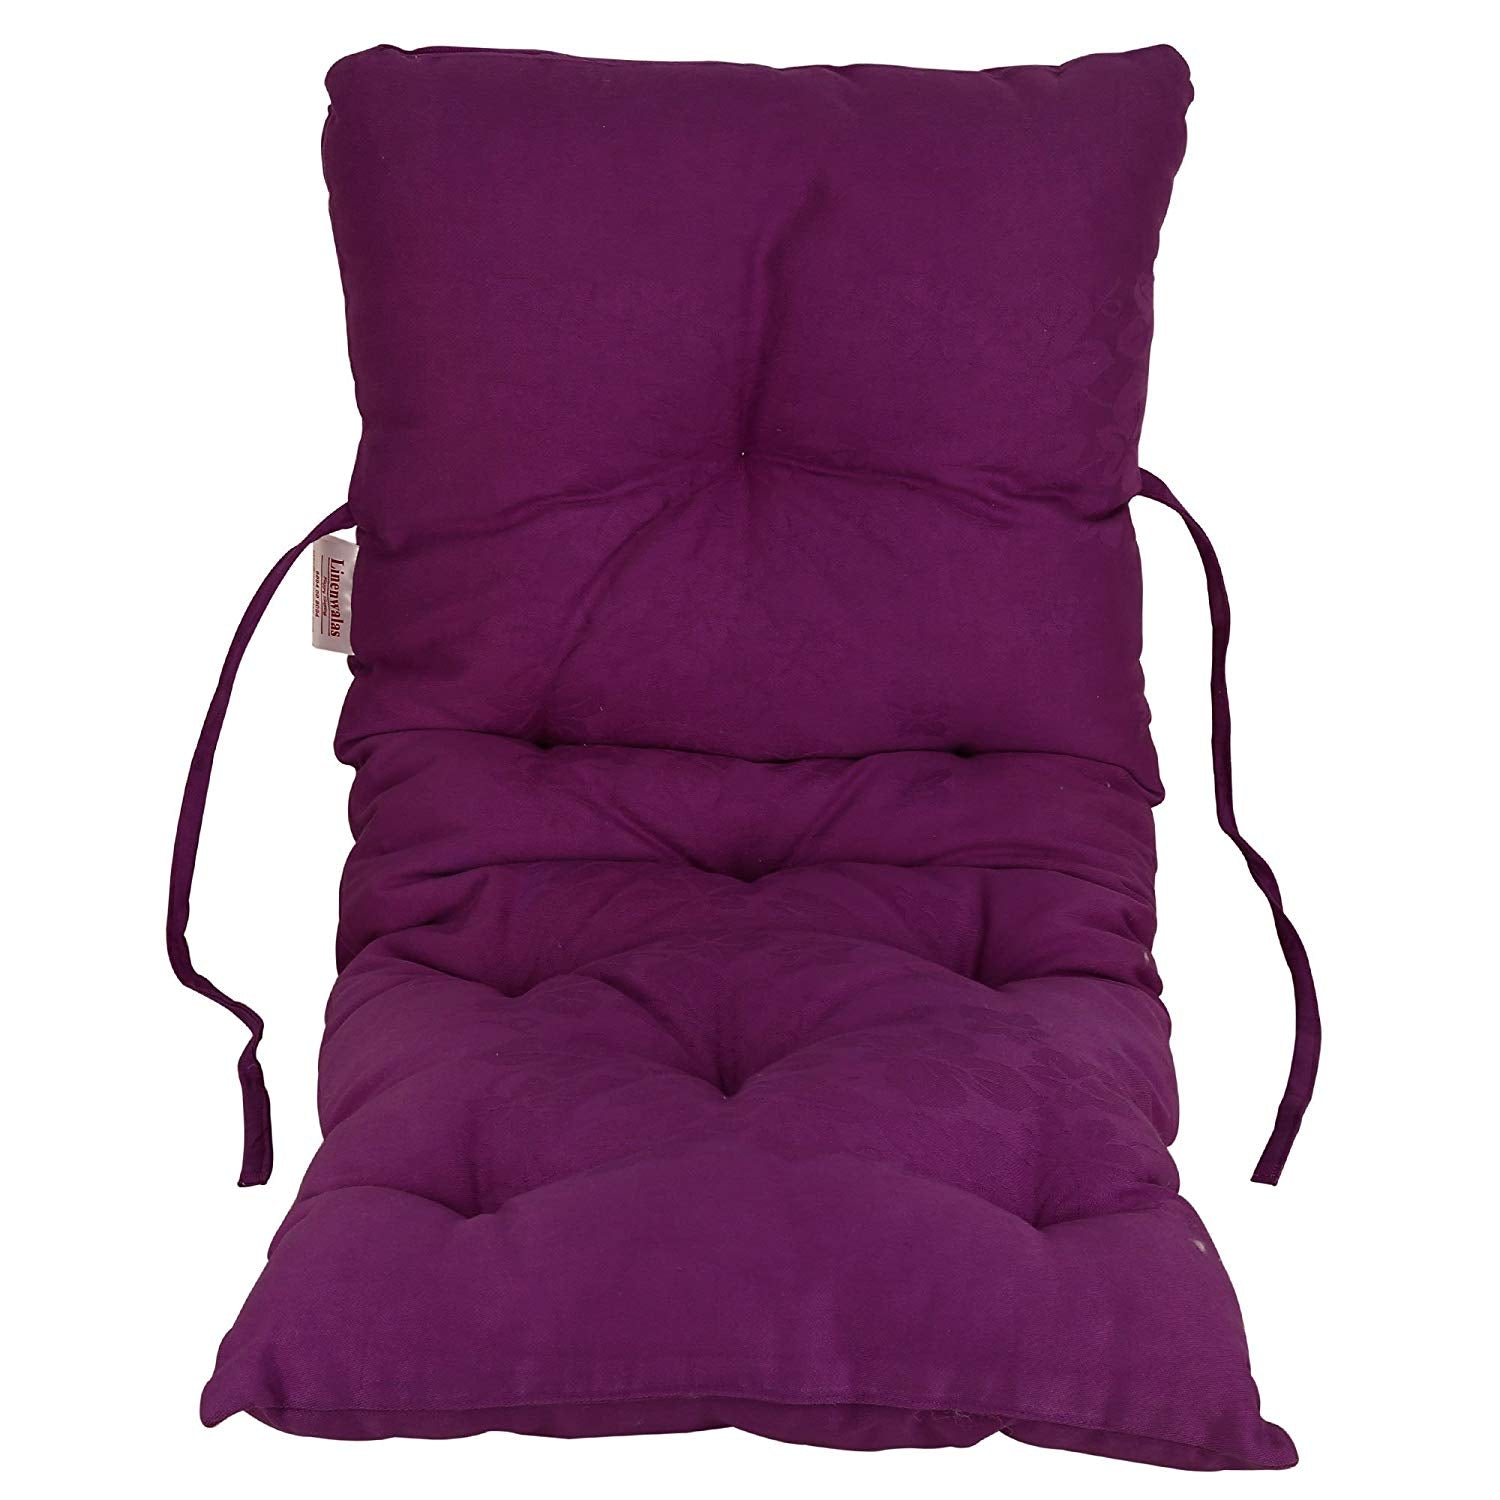 Linenwalas Chair Pads Buy Chair Cushion Online At Best